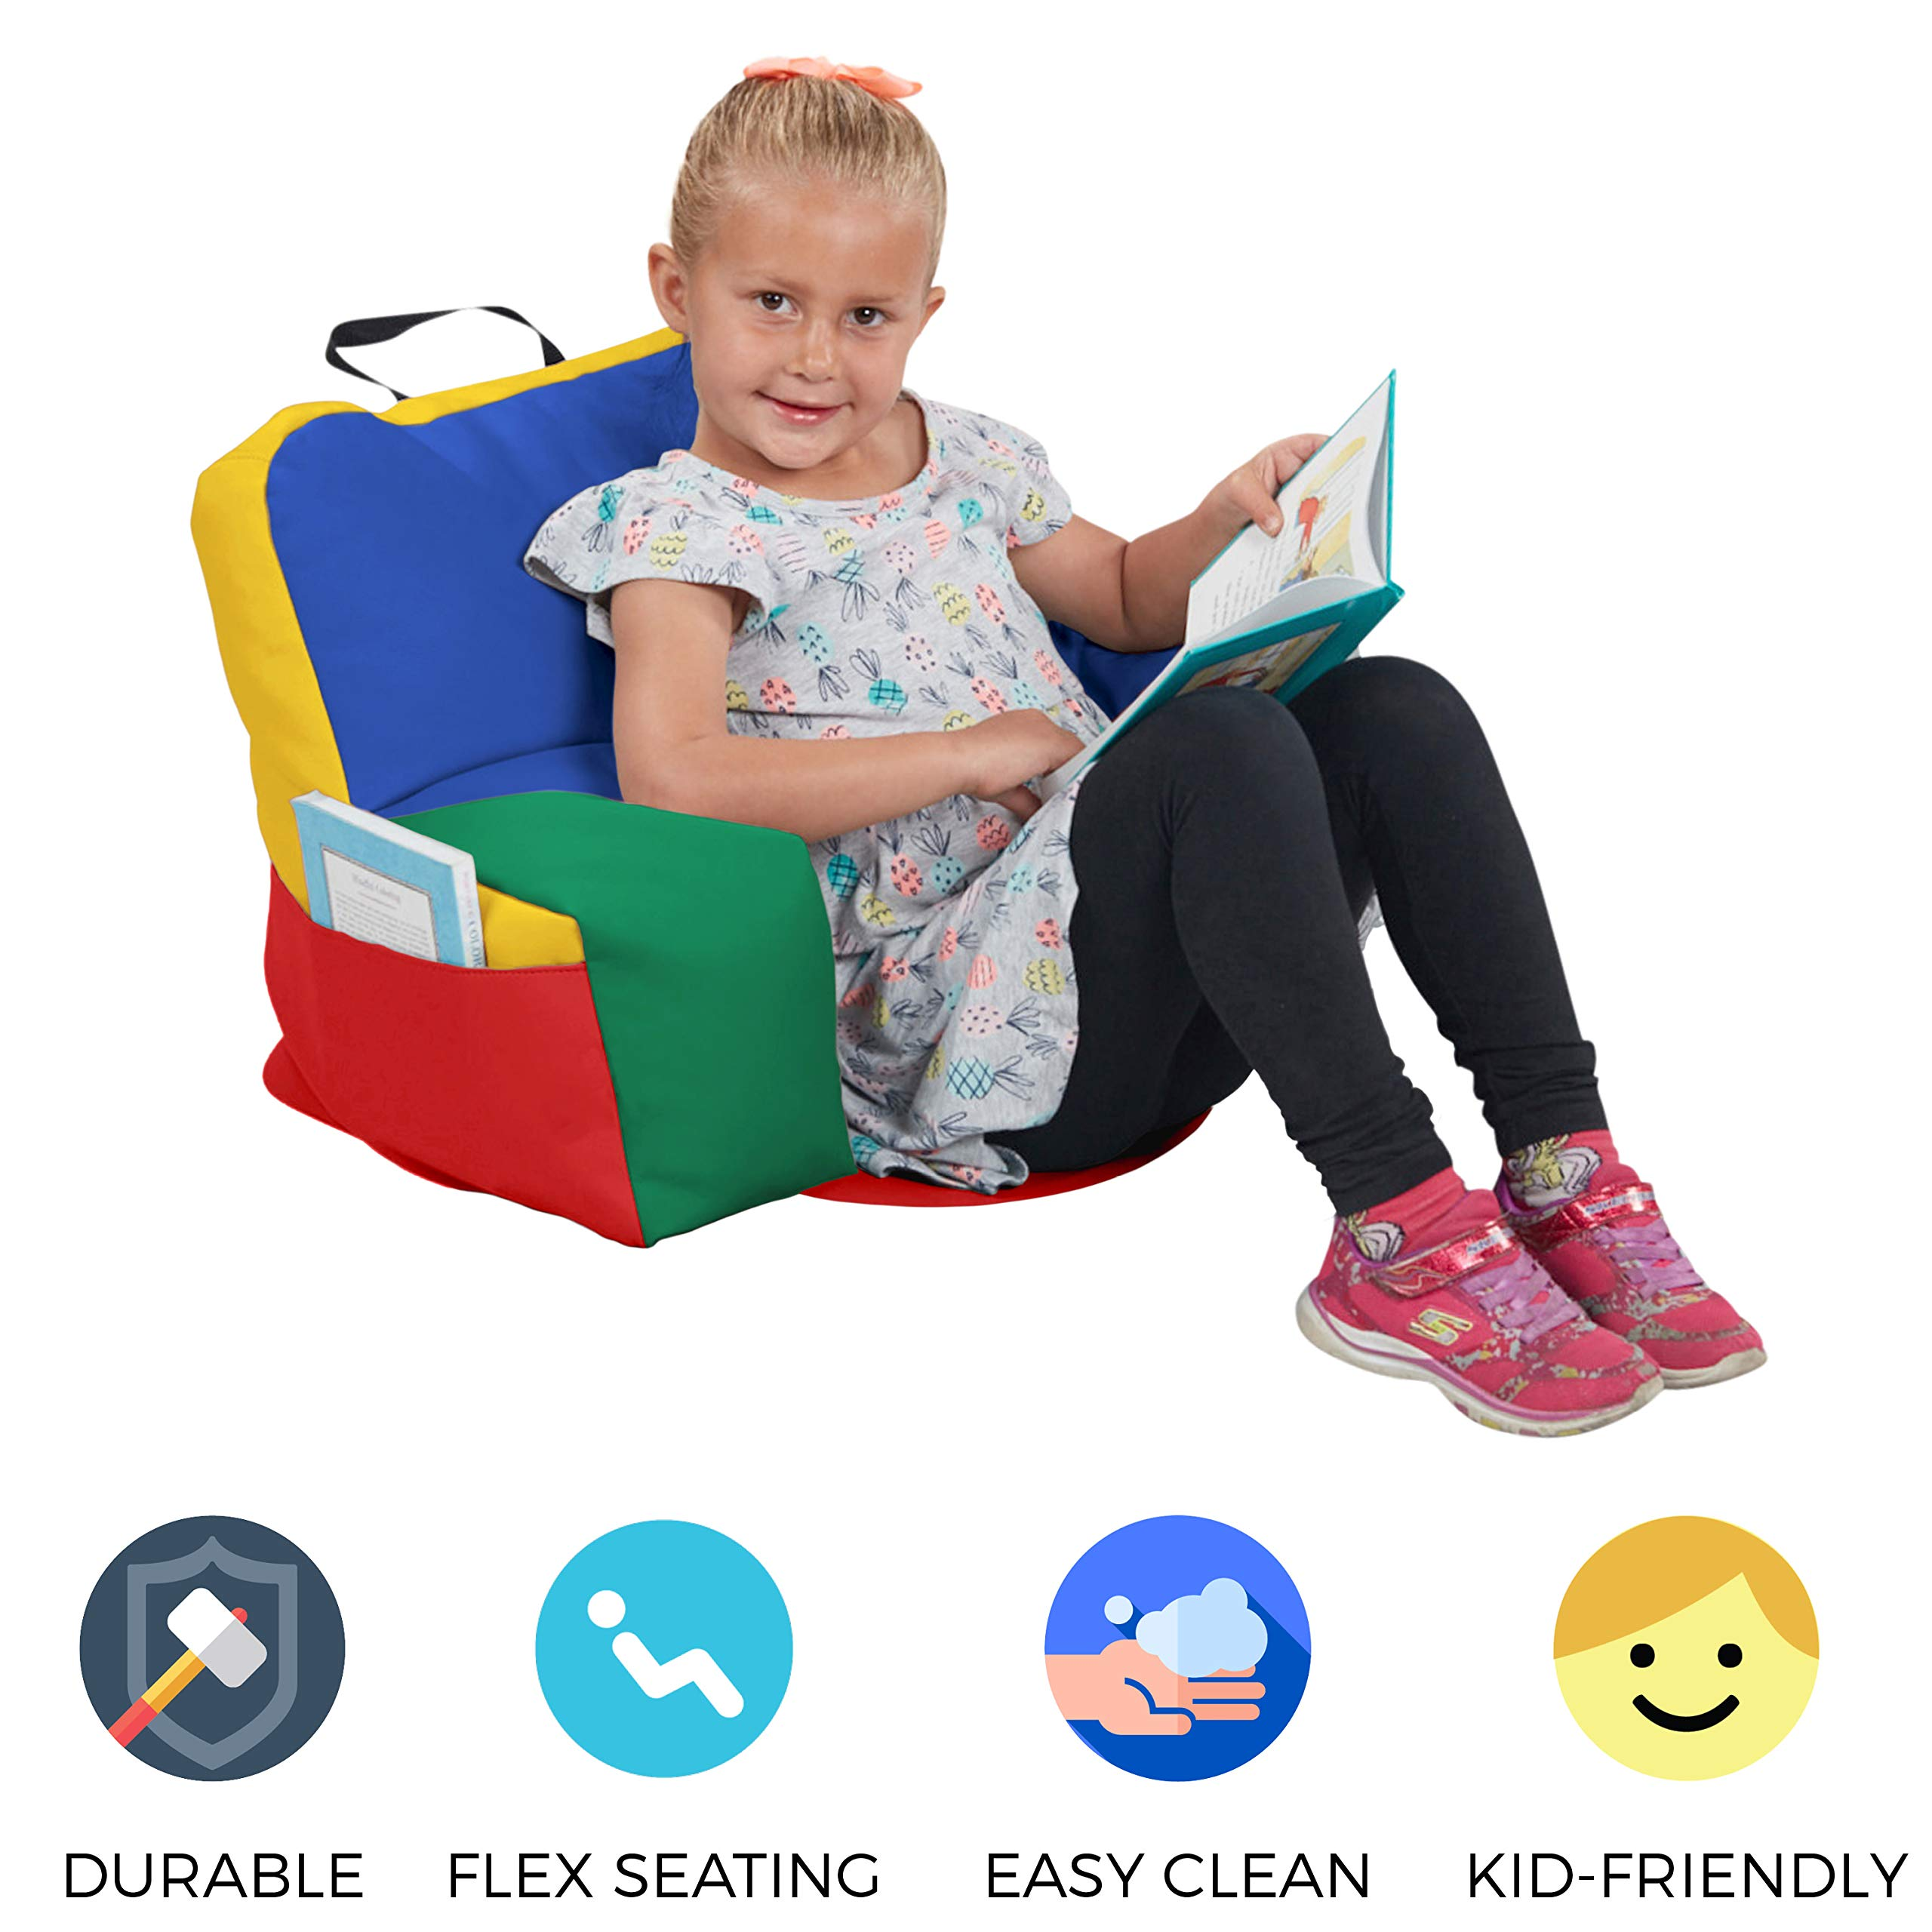 FDP SoftScape Relax-N-Read Bean Bag Chair with Supportive Back Rest and Storage Pockets, Flexible, Portable, Alternative Seating for Toddlers, Preschoolers, and Kids - Assorted